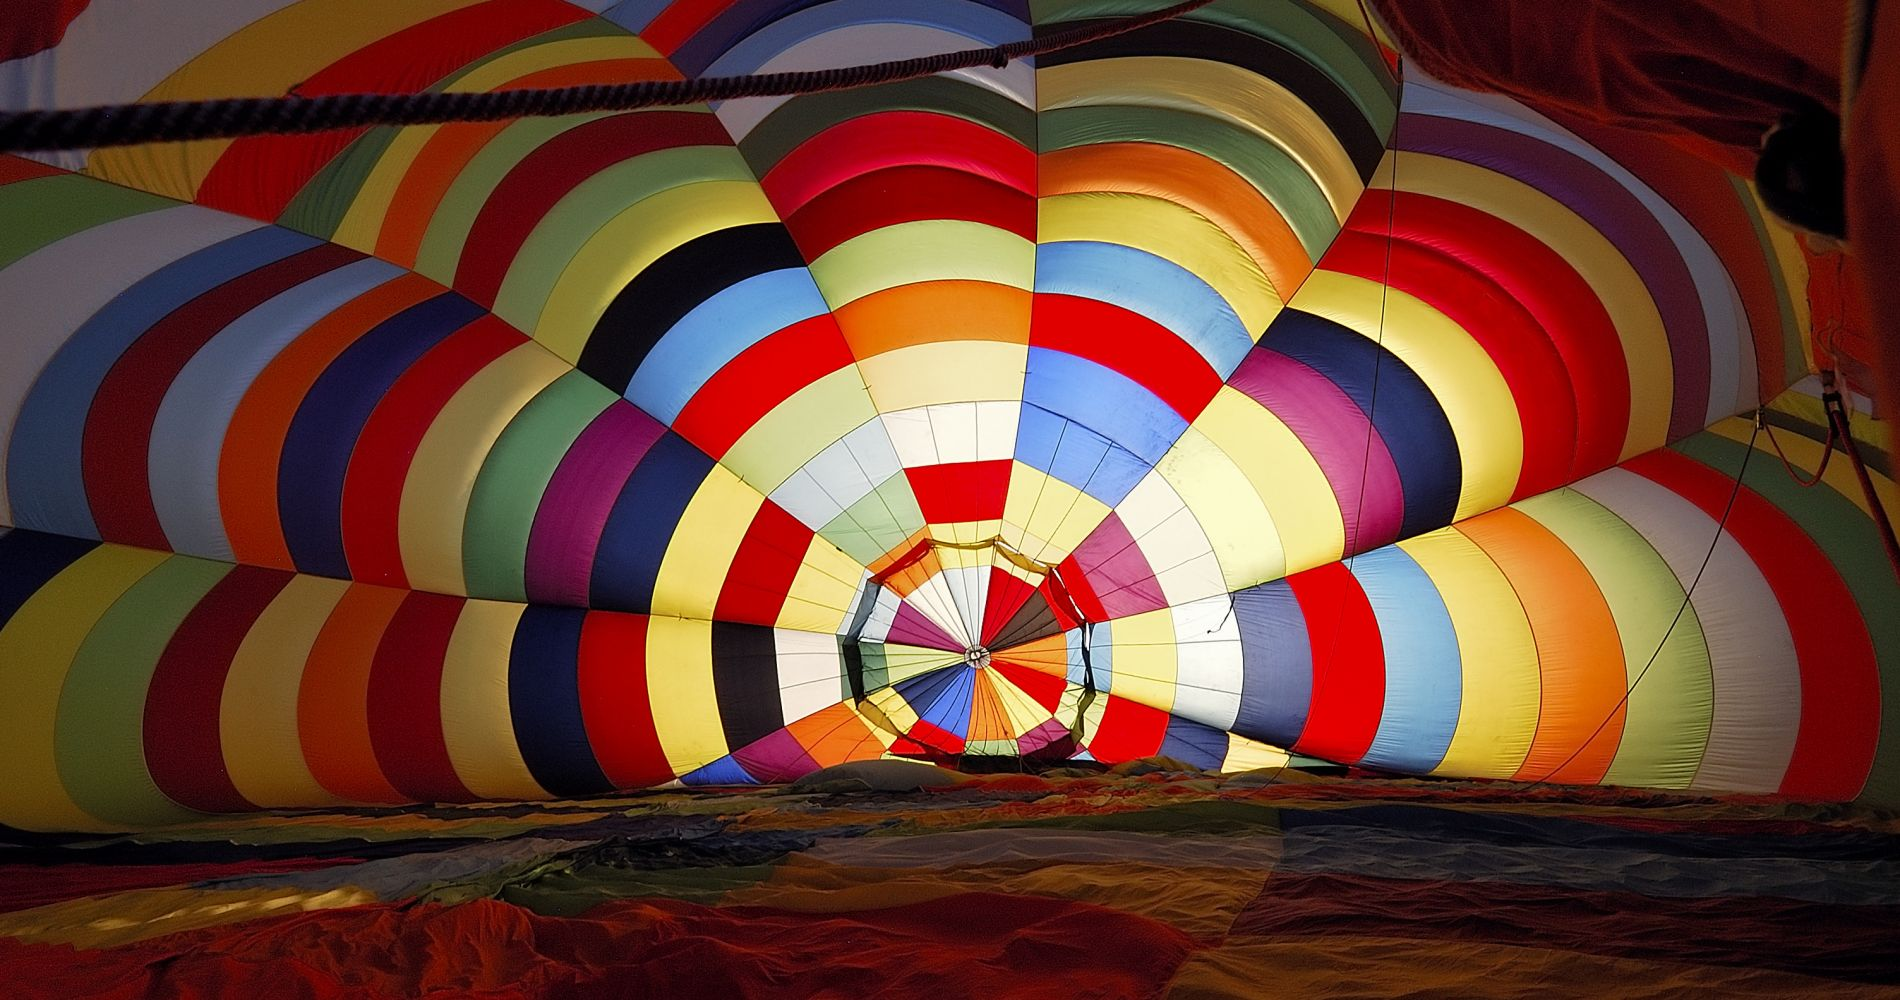 Hot Air Balloon Flight near Chicago